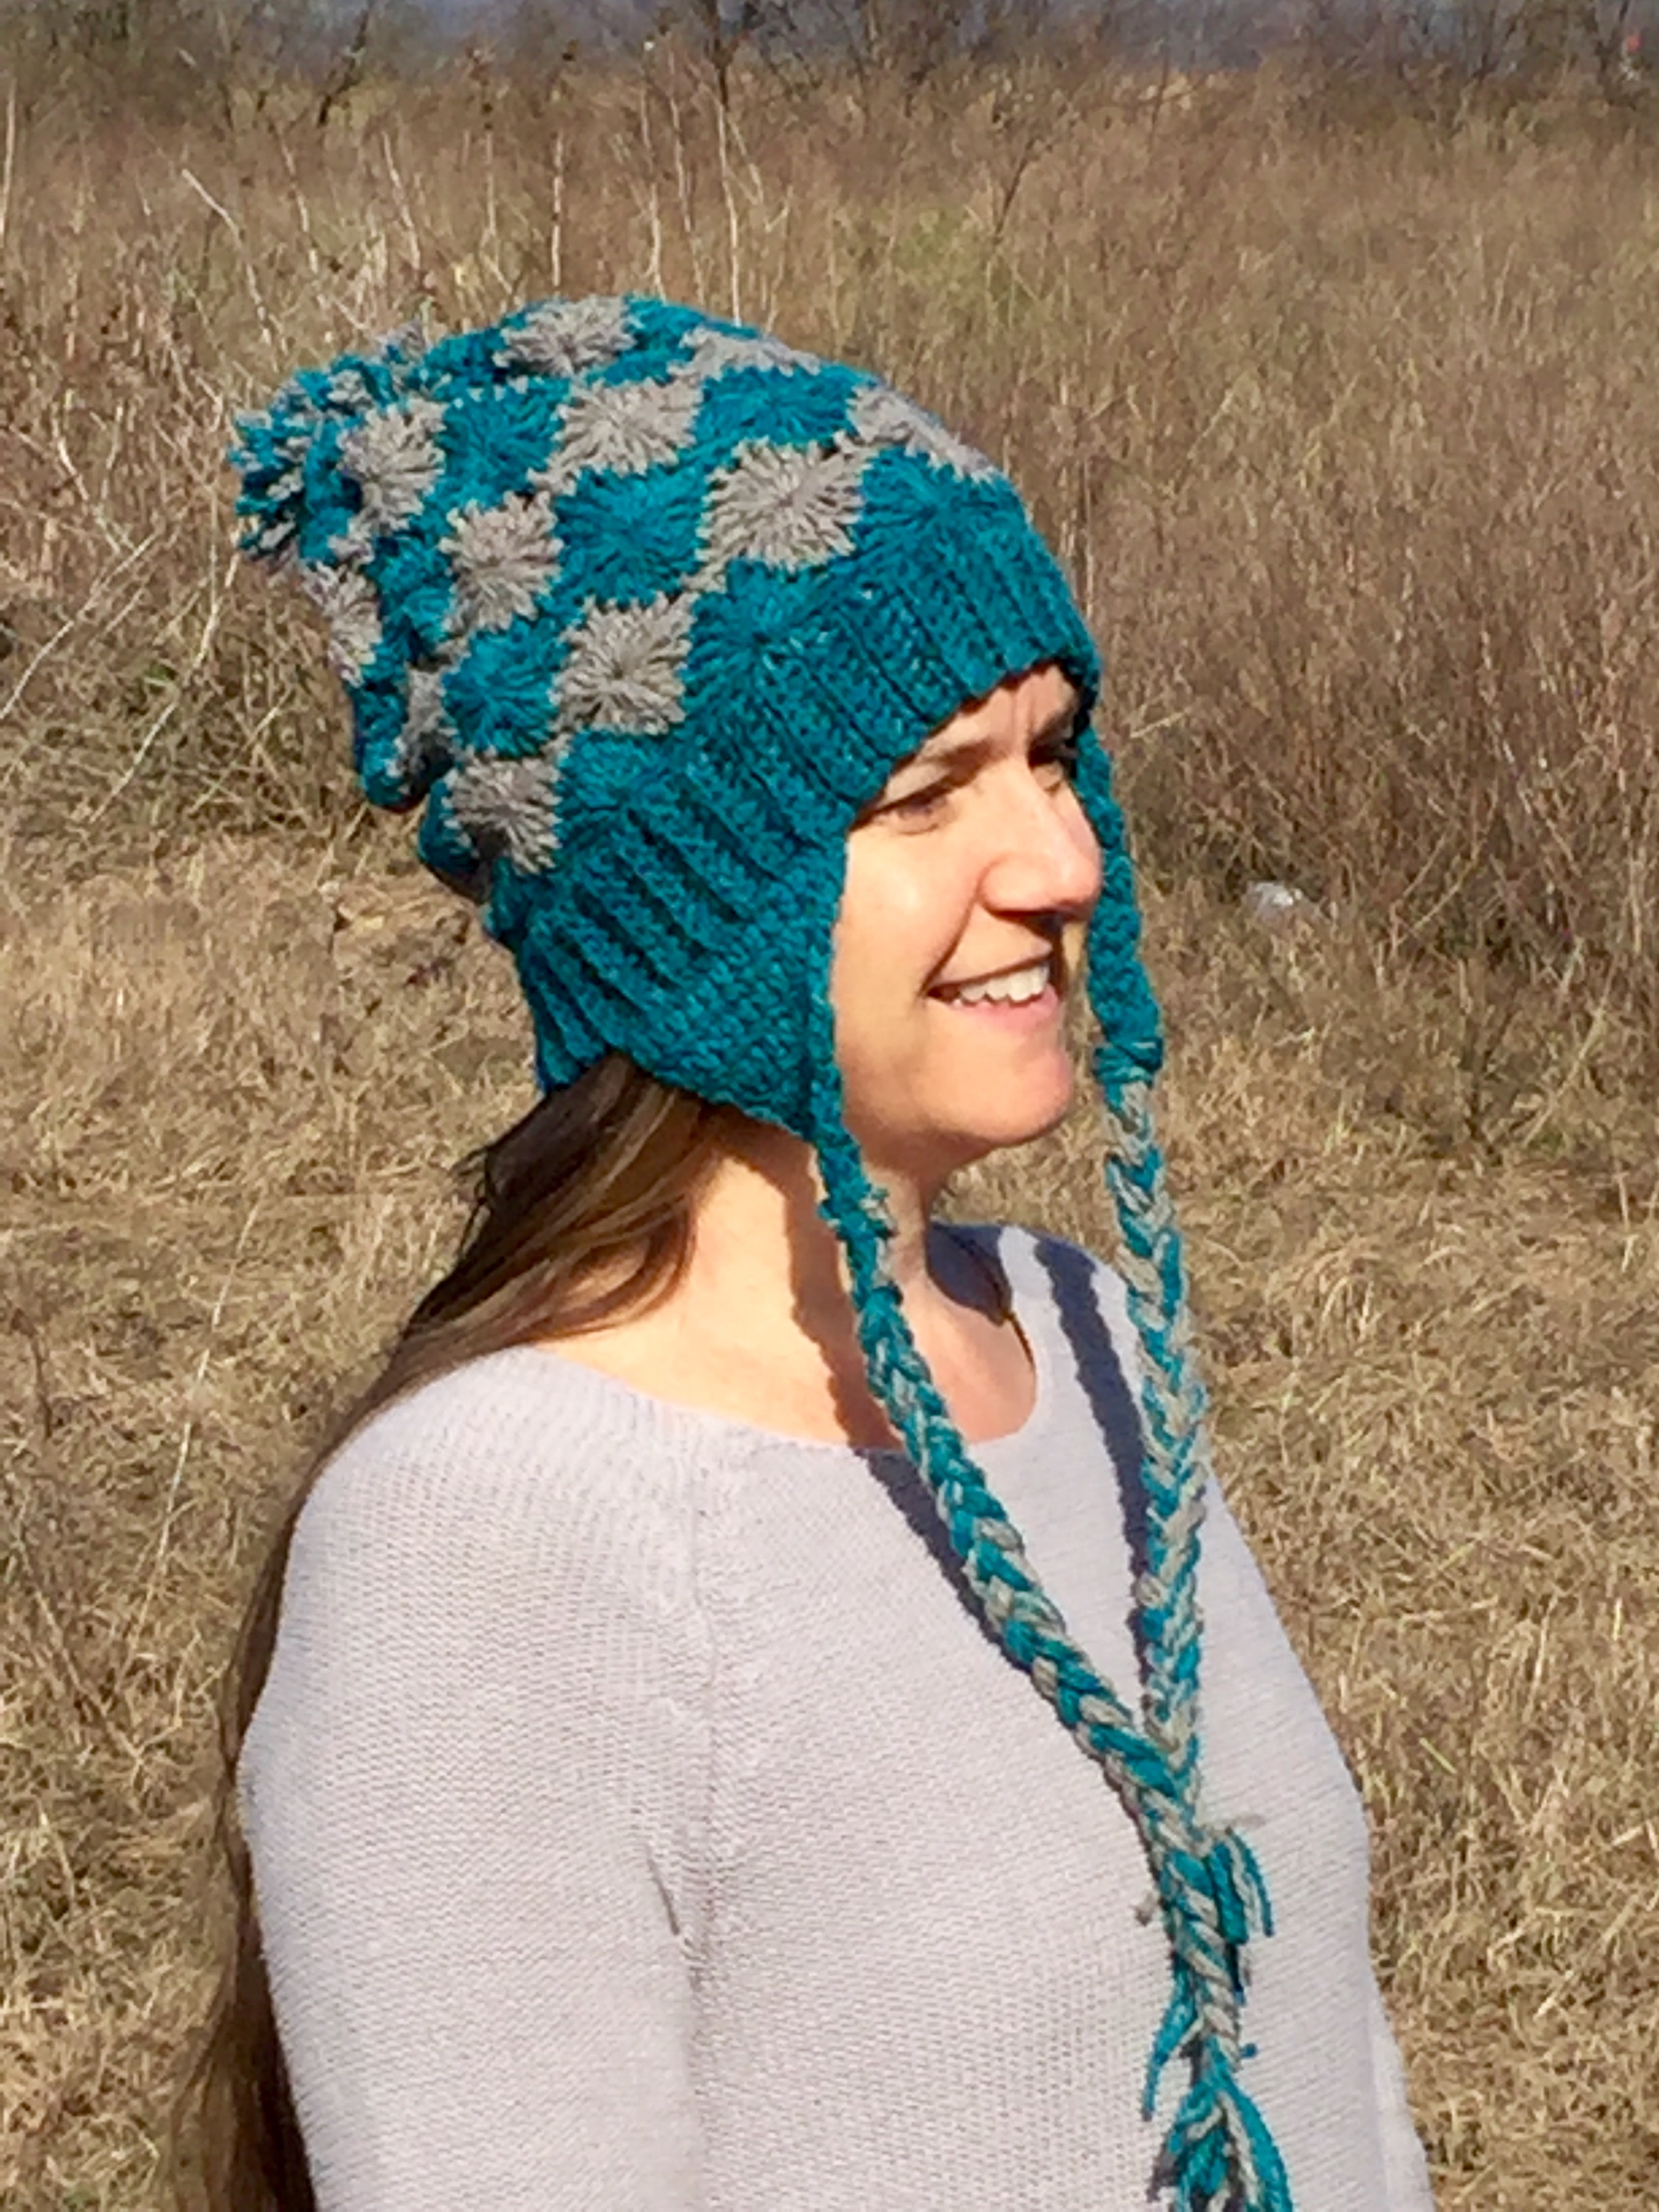 Doris Diamond Hat in Teal and Gray Crochet Pattern by Little Monkey's Designs